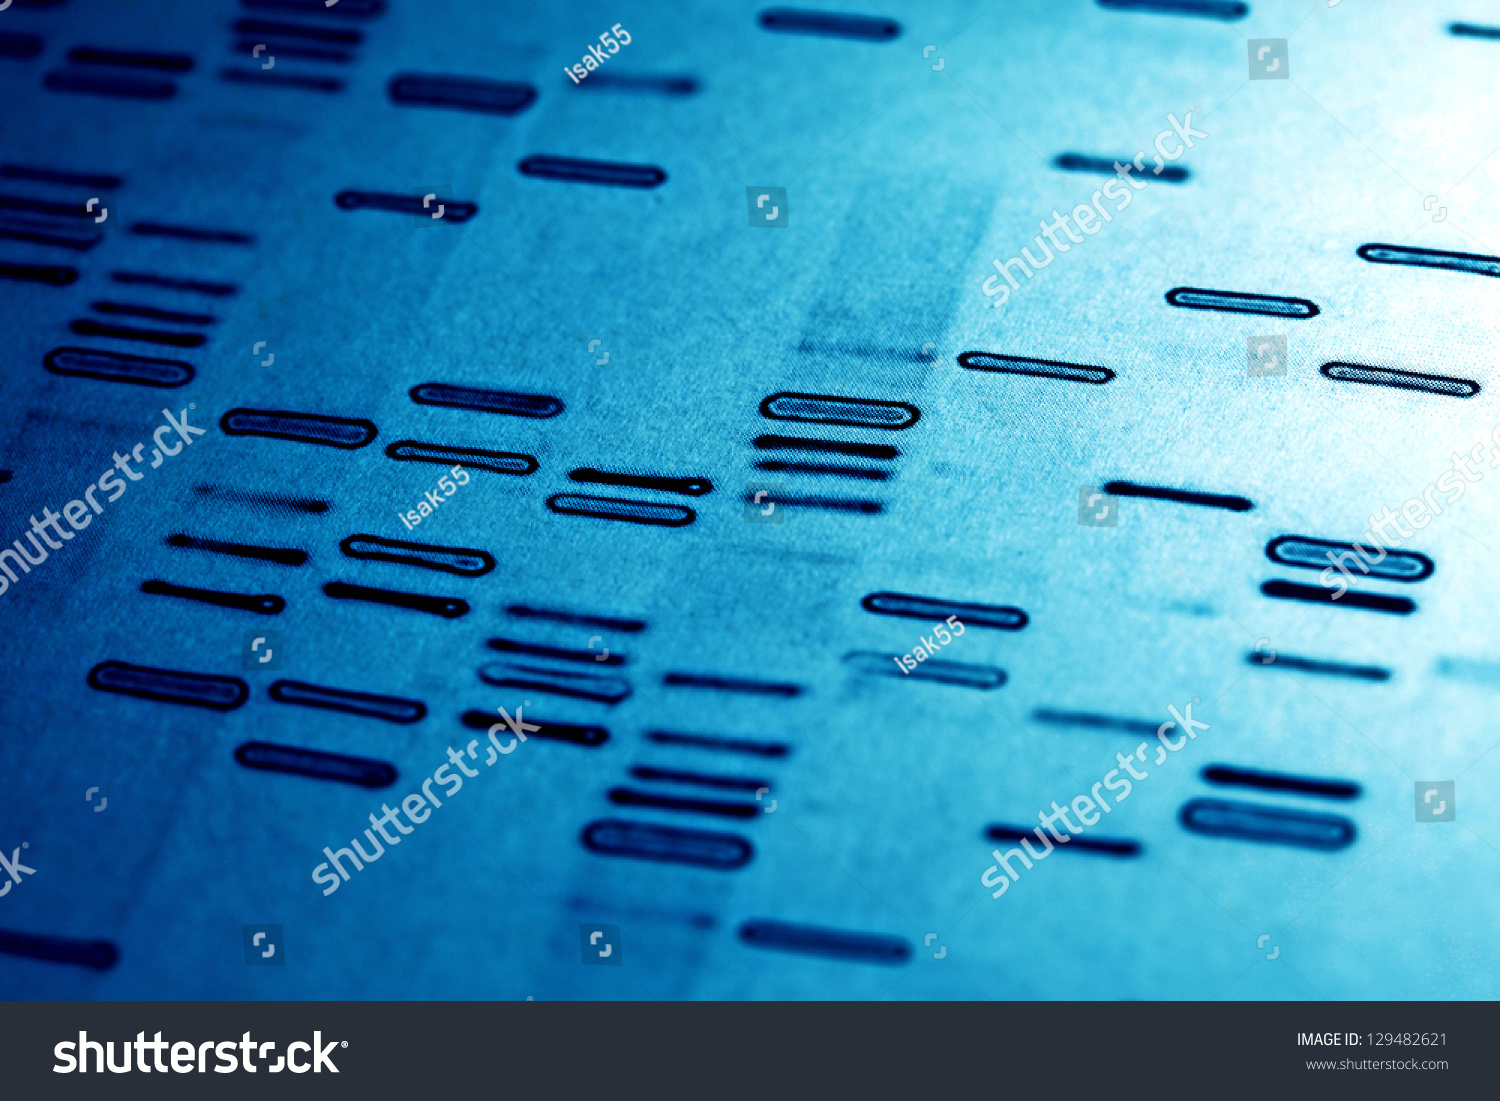 term paper on dna fingerprinting The technique of dna fingerprinting, which involves comparing samples of human dna left at a crime scene with dna obtained from a suspect, is now considered the most reliable form of identification by many investigators and scientists since its development in the 1980s.